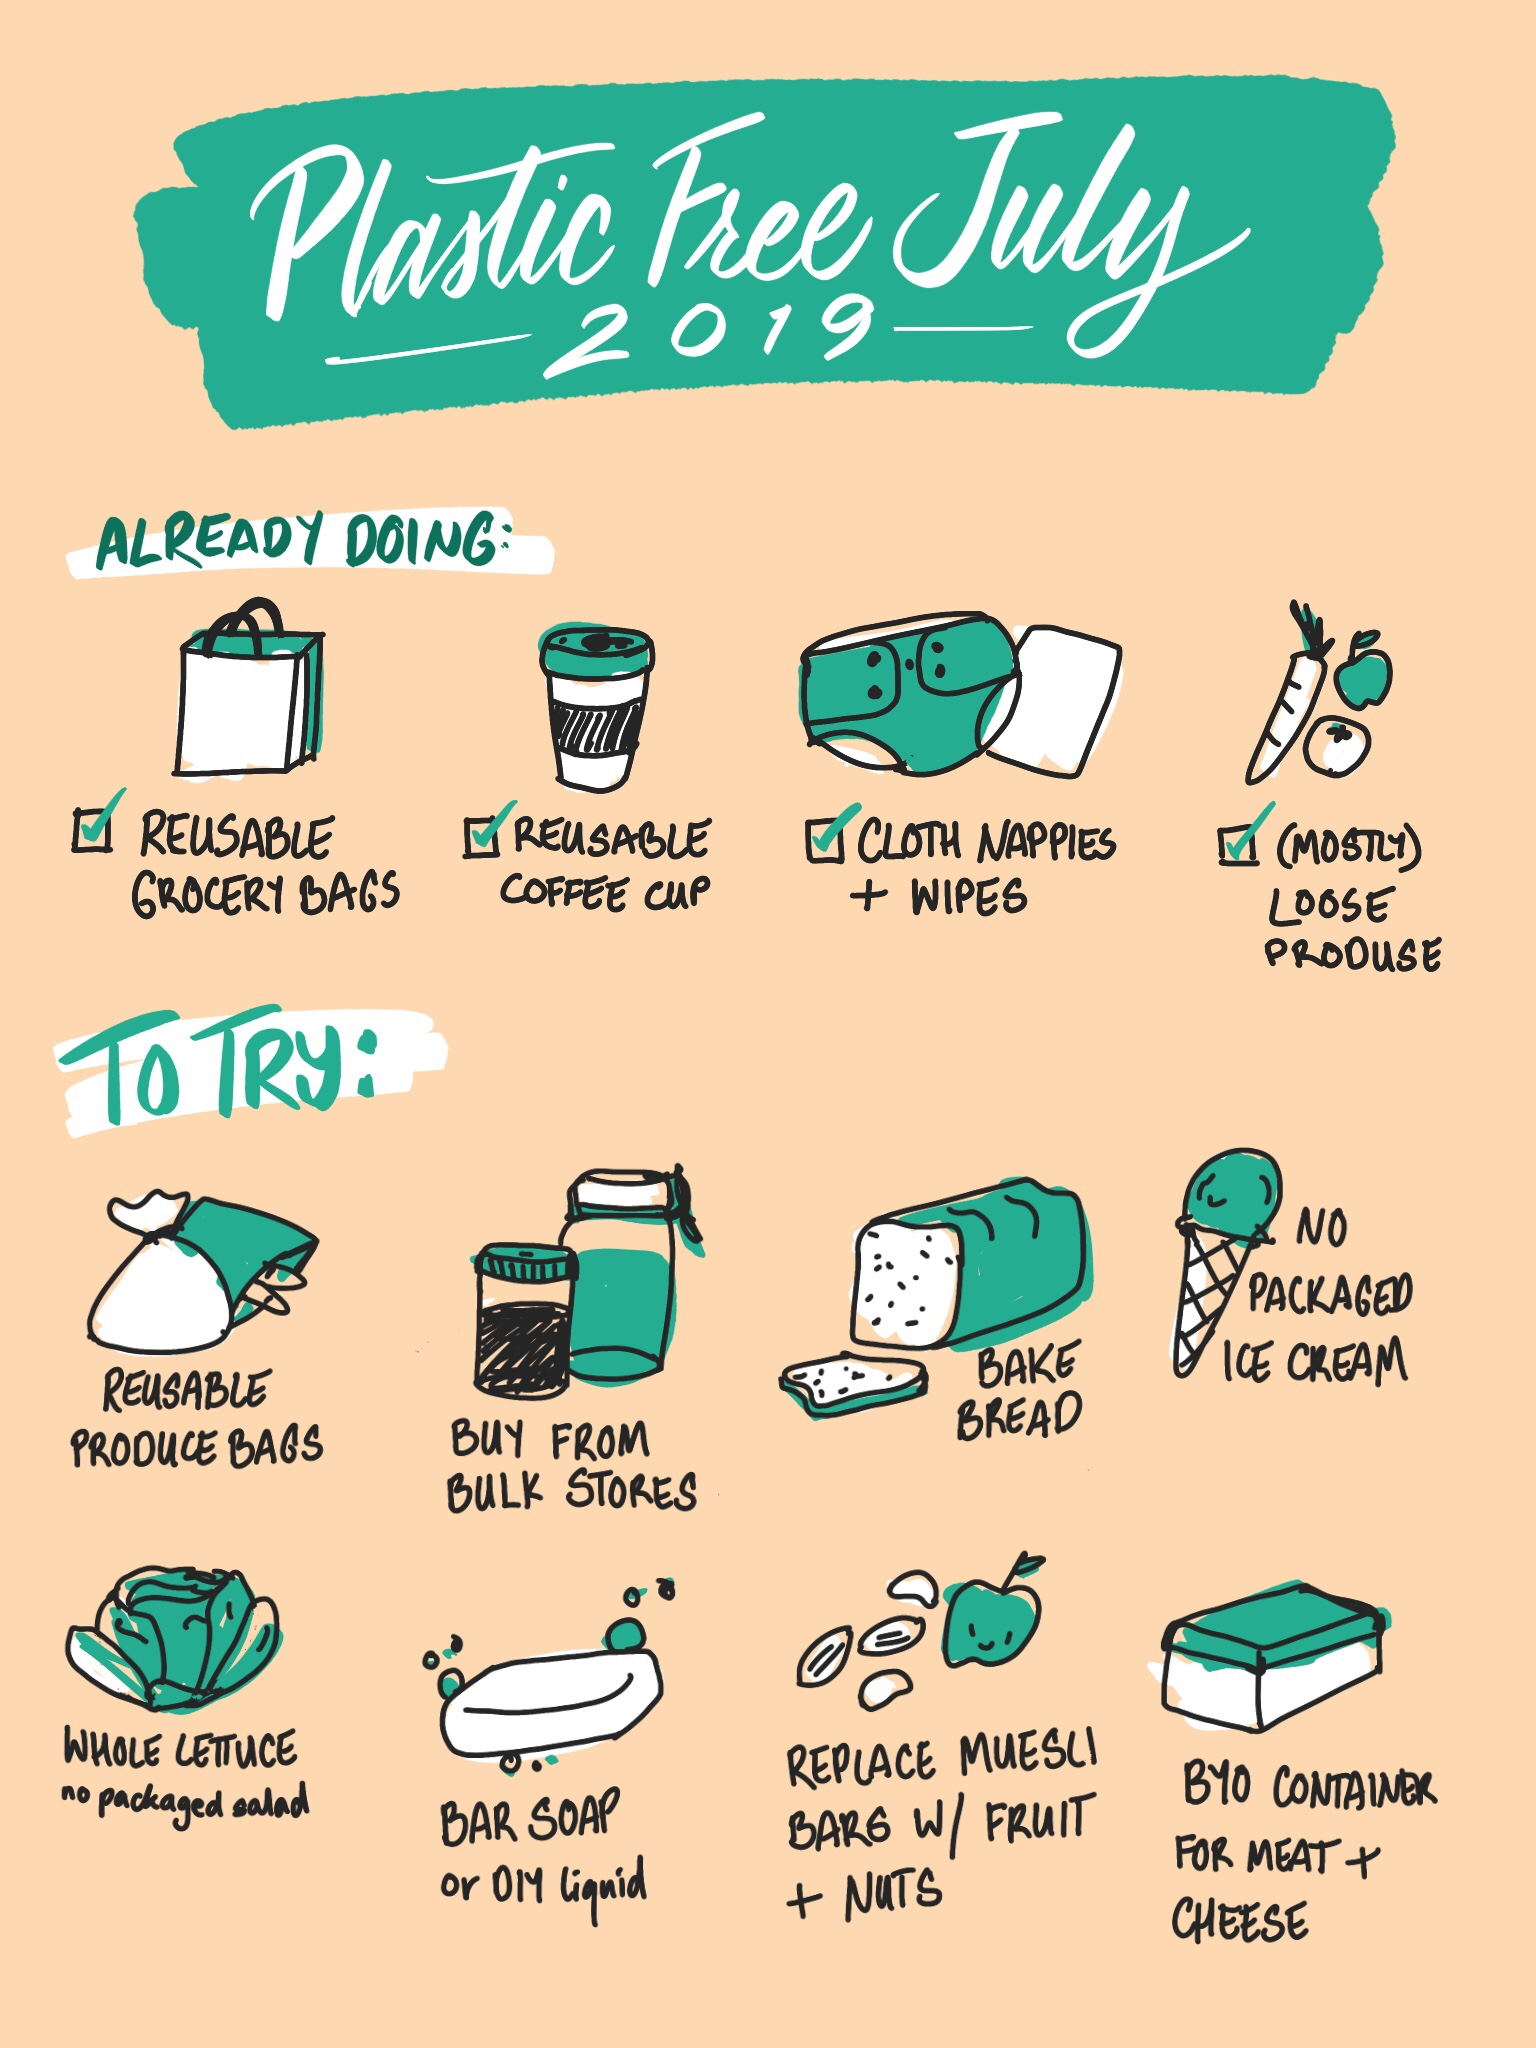 List of things to try to reduce plastic use for Plastic Free July